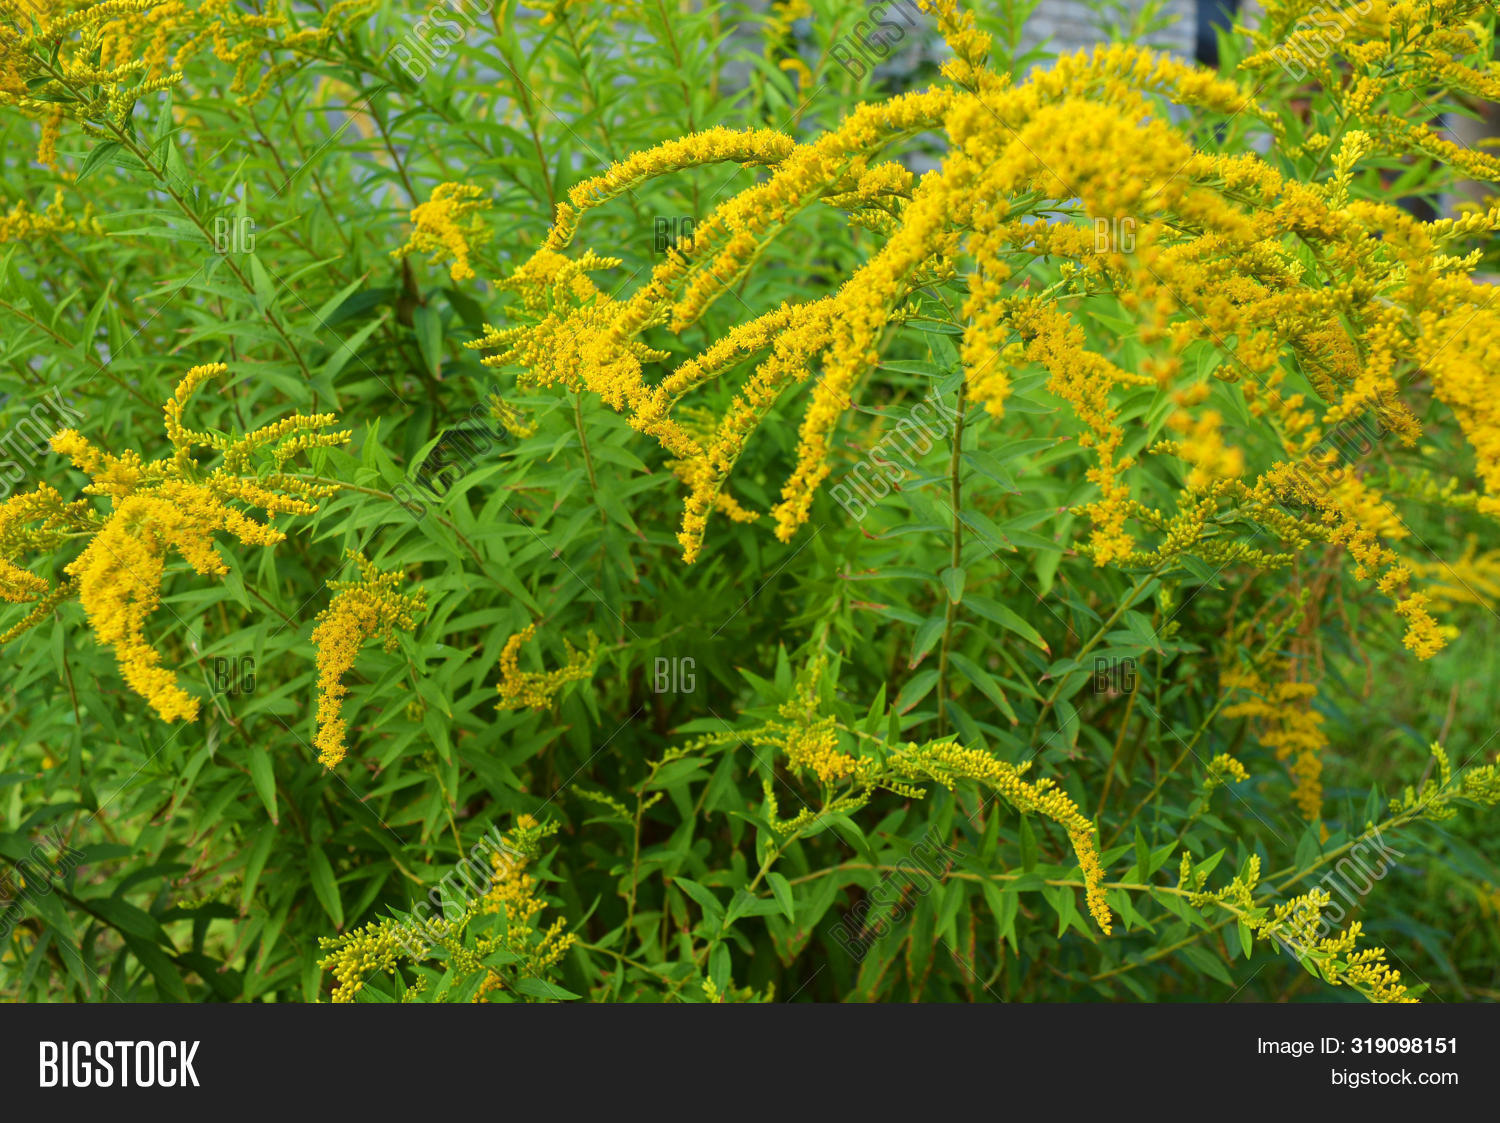 Bright shrubs with yellow flowers, a giant golden rod with interesting bloom, solidago gigantea, tall goldenrod, giant goldenrod.